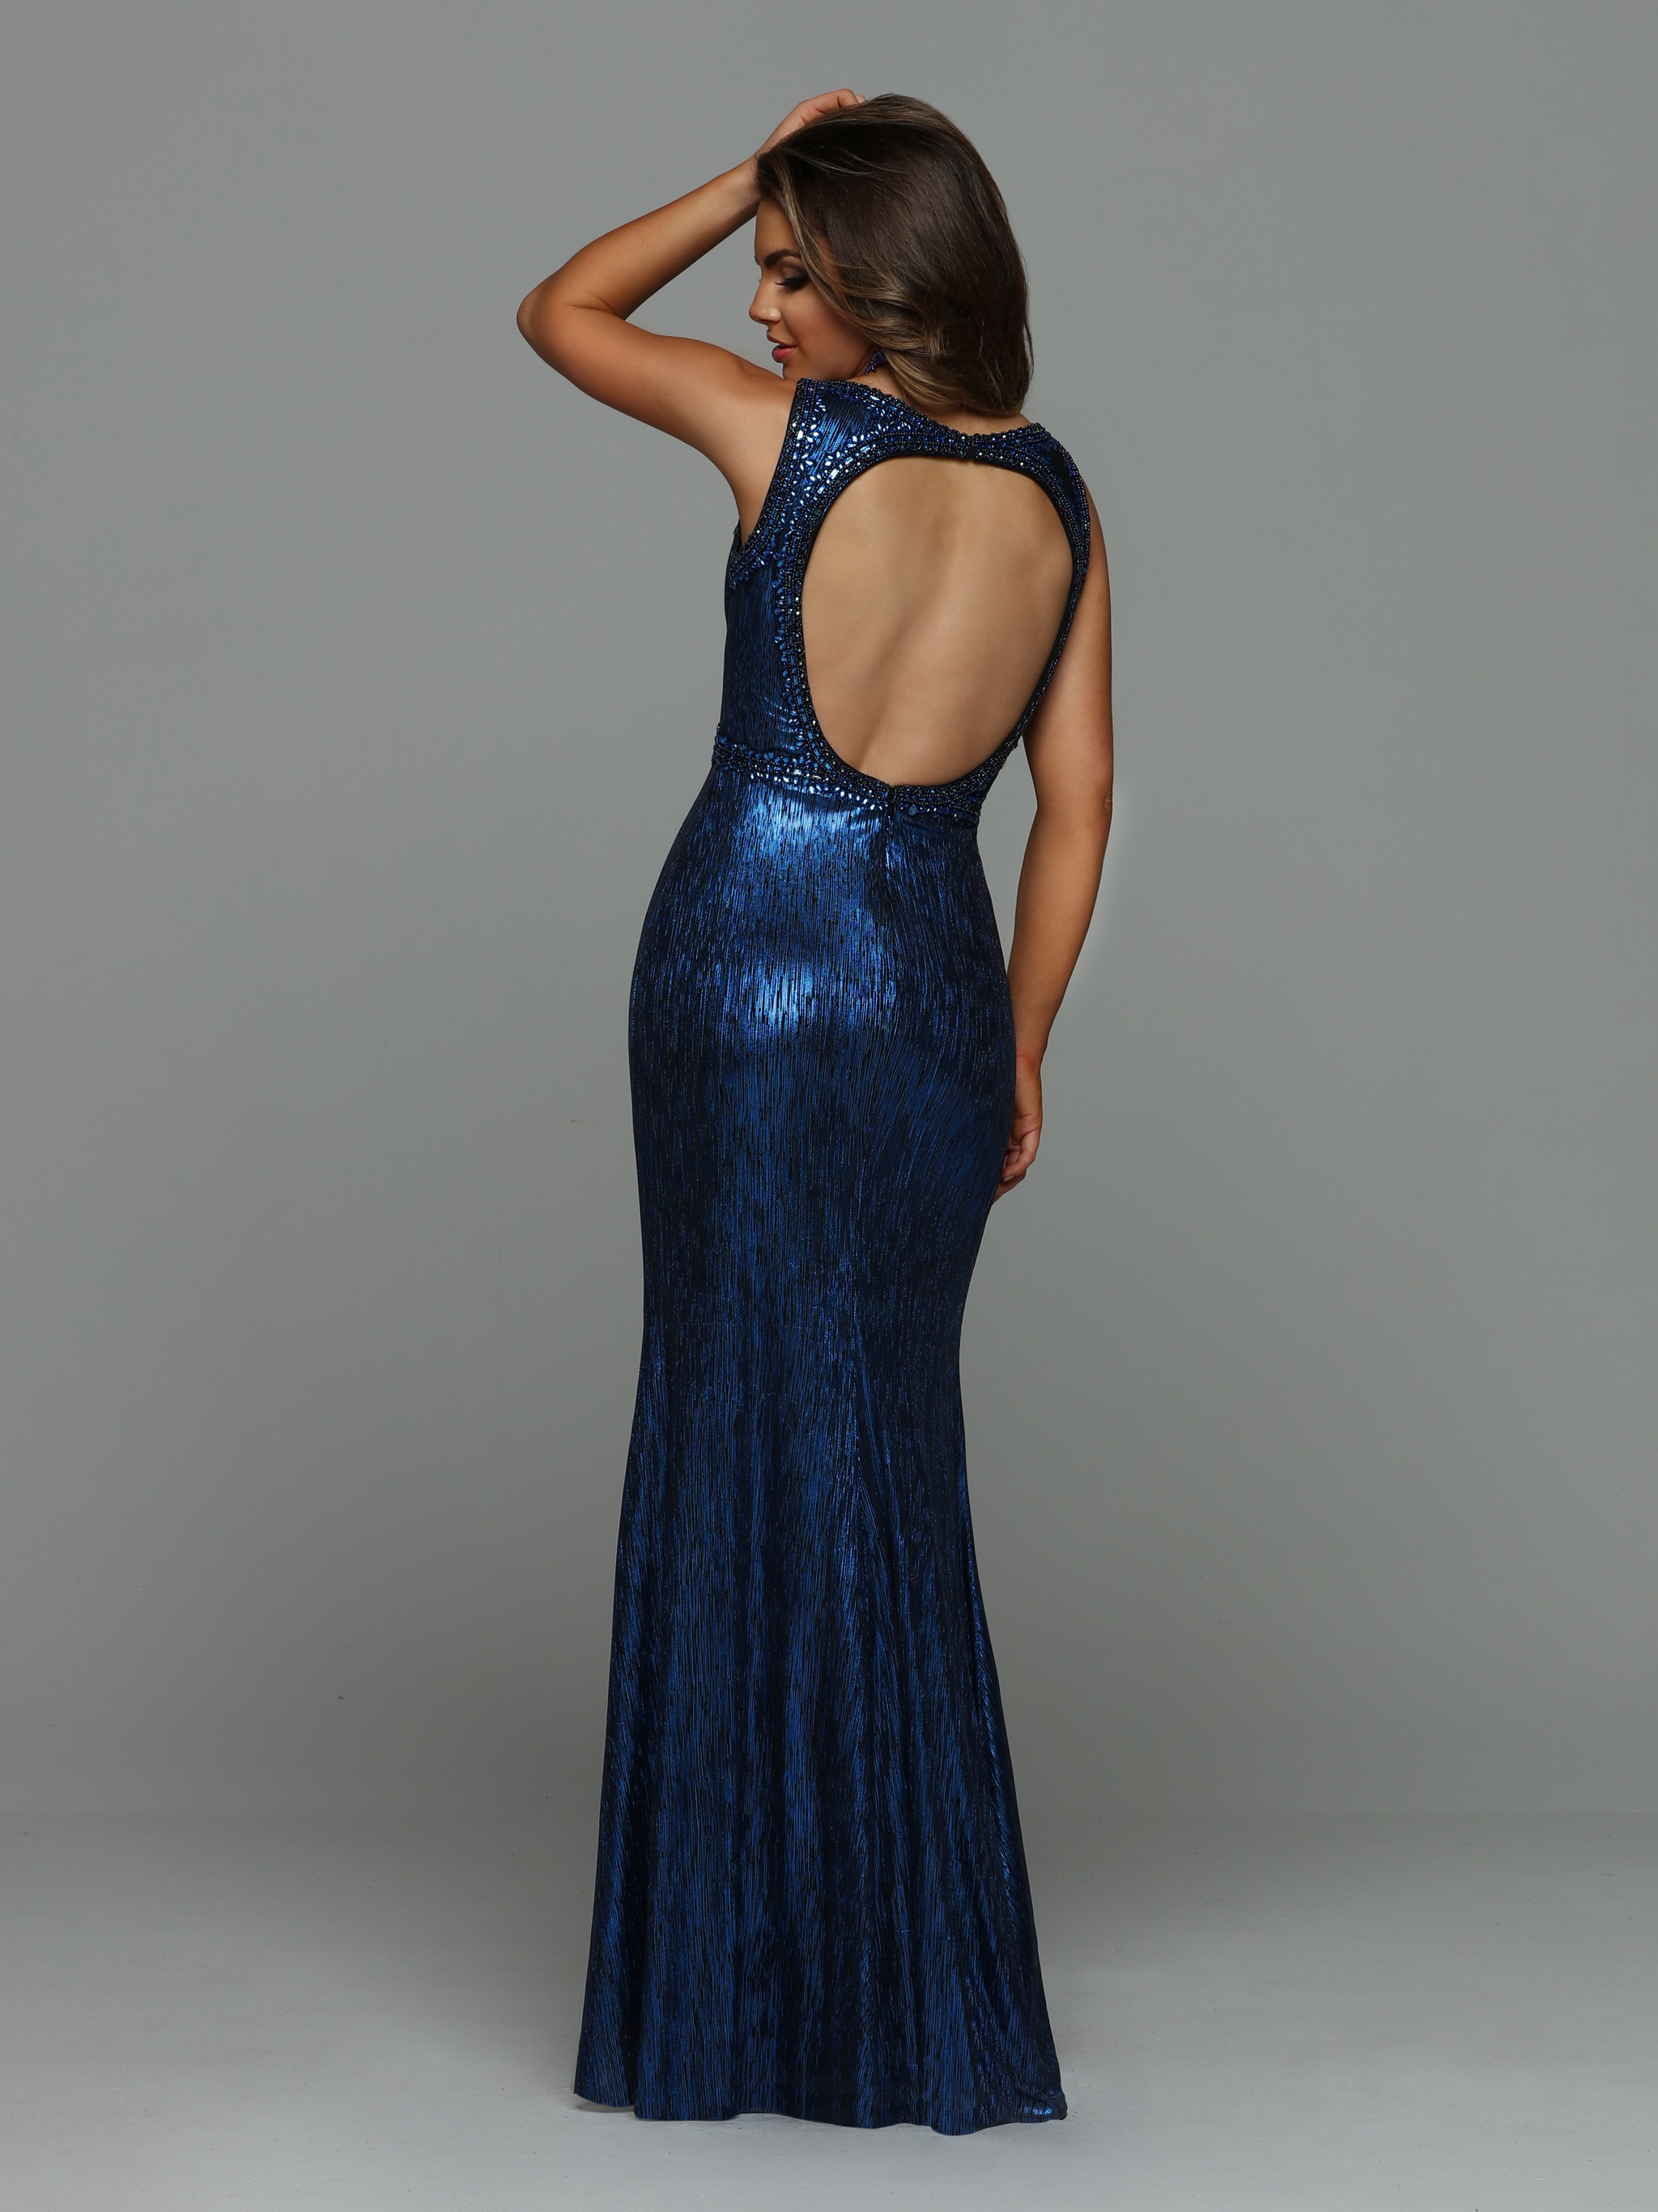 Image showing back view of style #71929